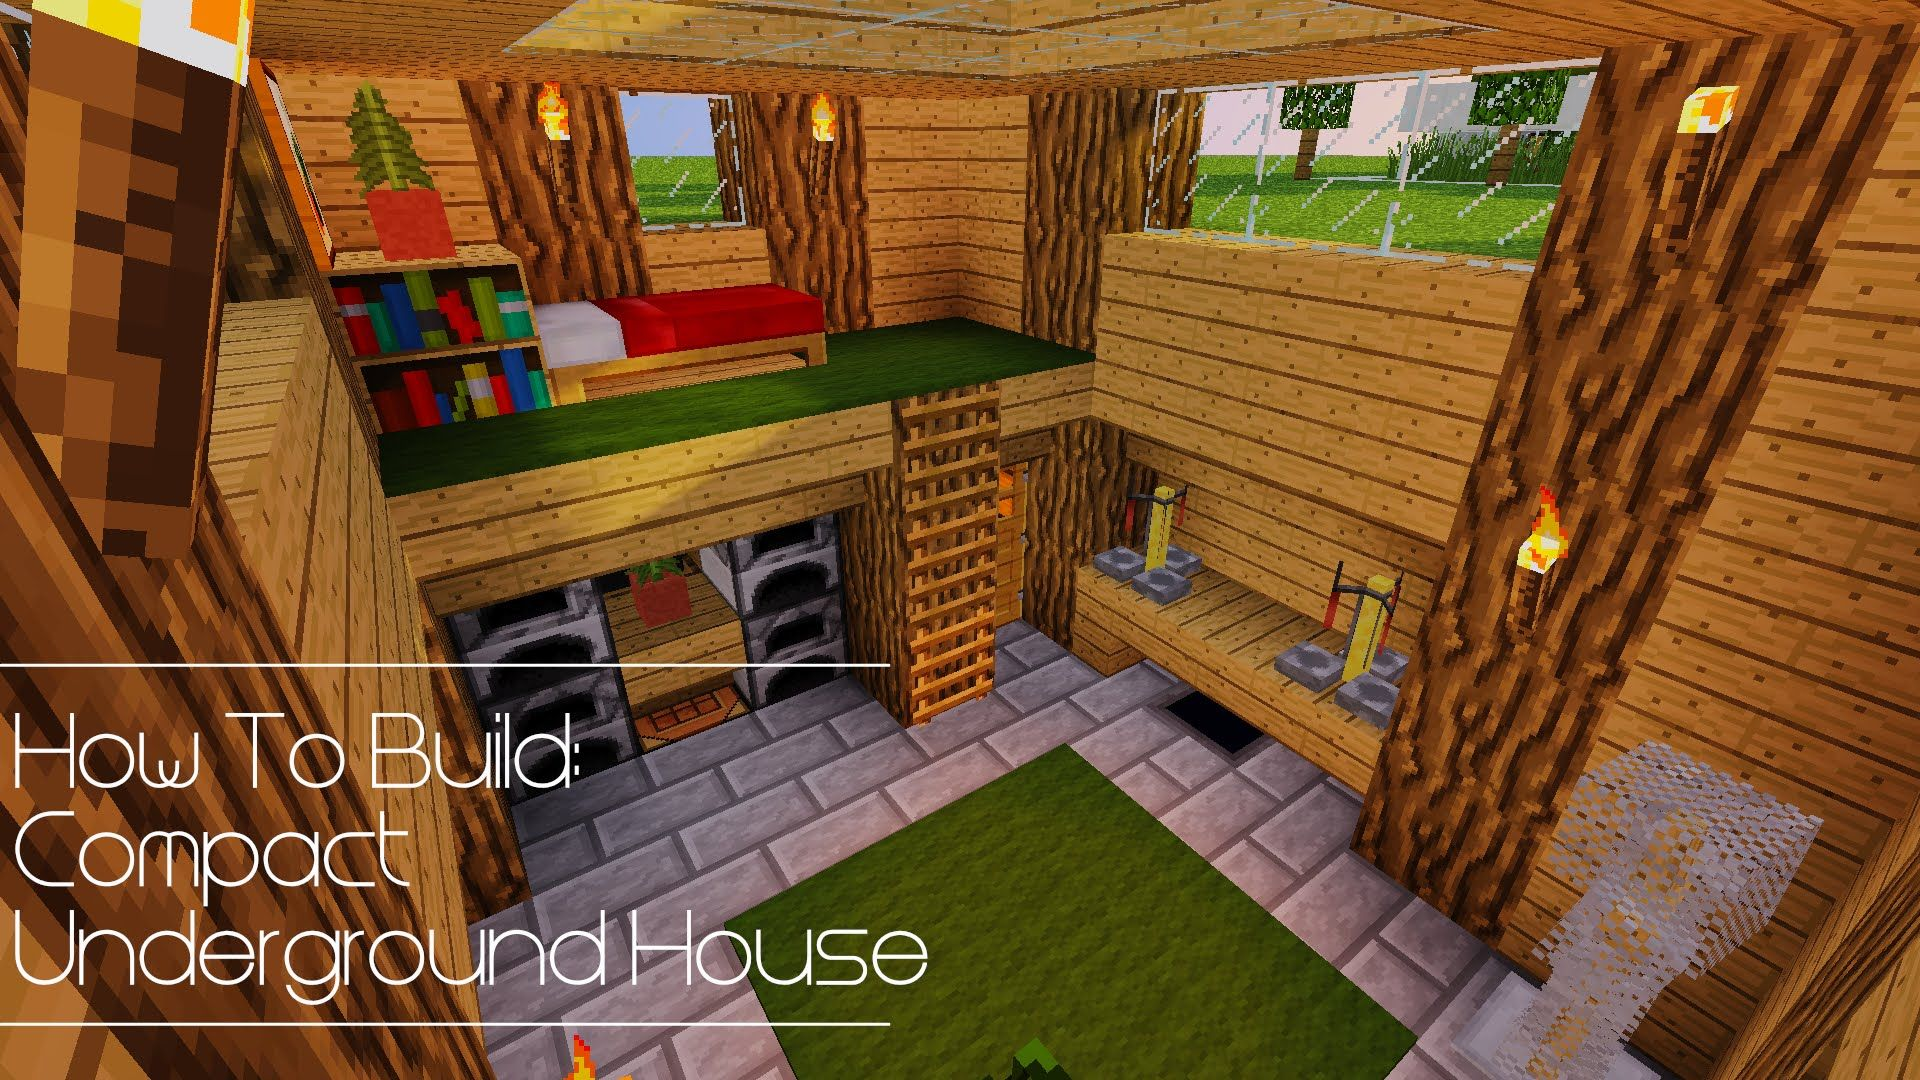 How To Build Compact Underground House Minecraft Underground Cool Minecraft Houses Minecraft Interior Design